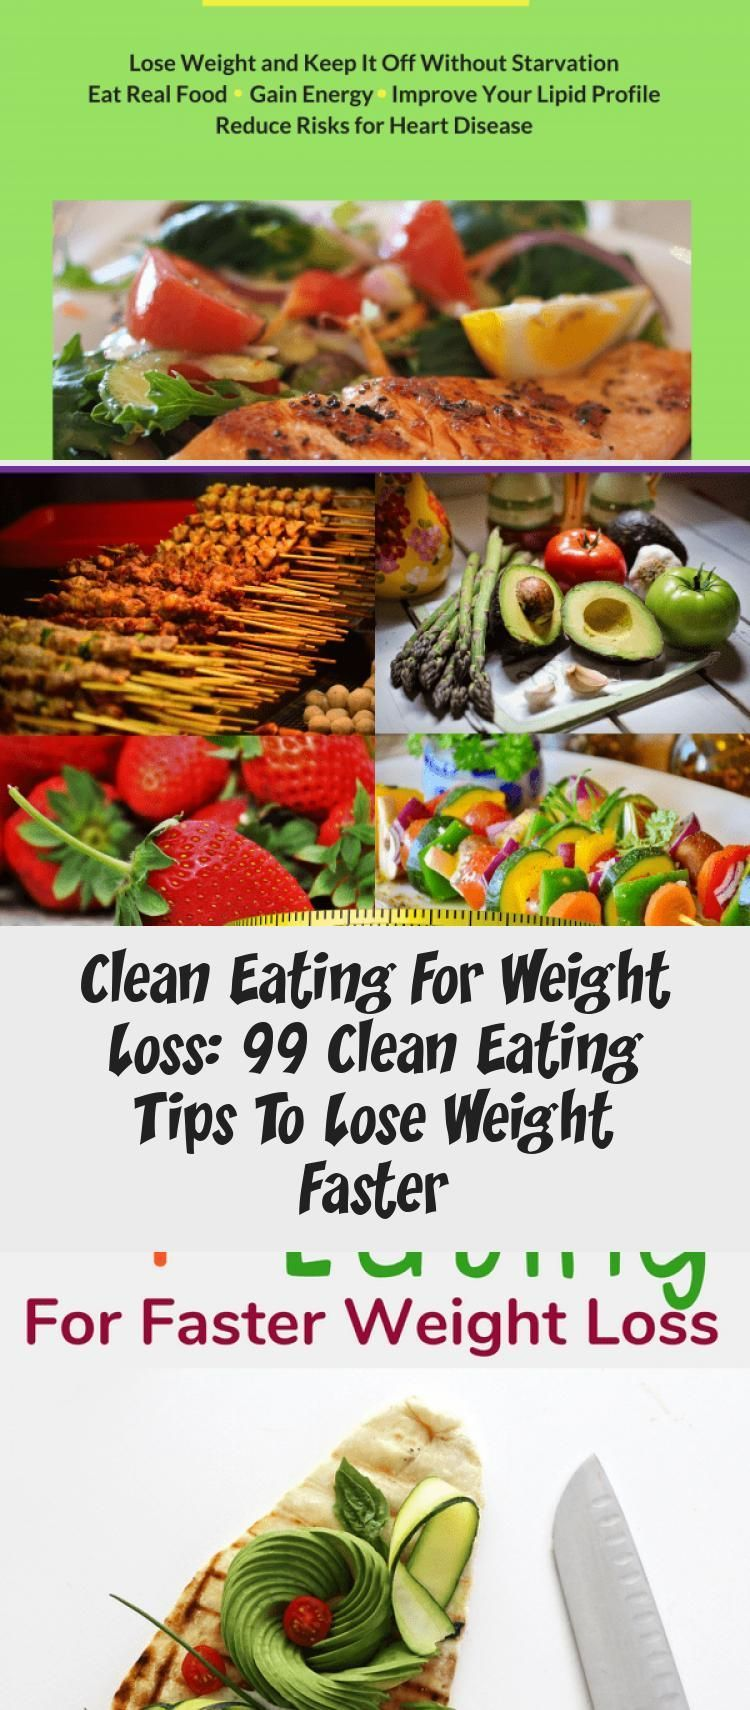 Clean Eating For Weight Loss: 99 Clean Eating Tips To Lose Weight Faster - health and diet fitness,...